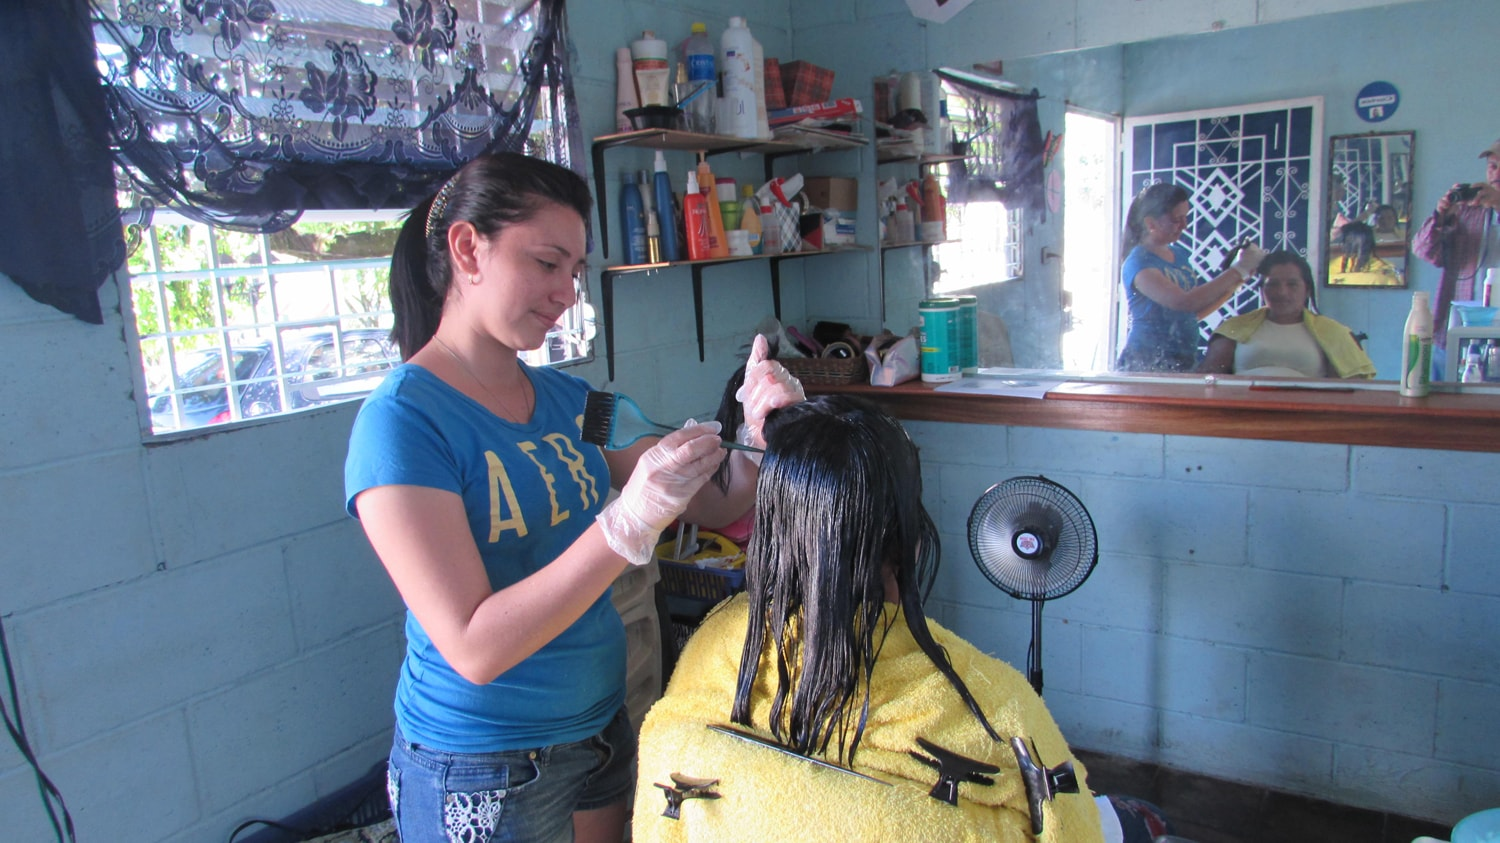 A young woman dying hair at a hairdressing.